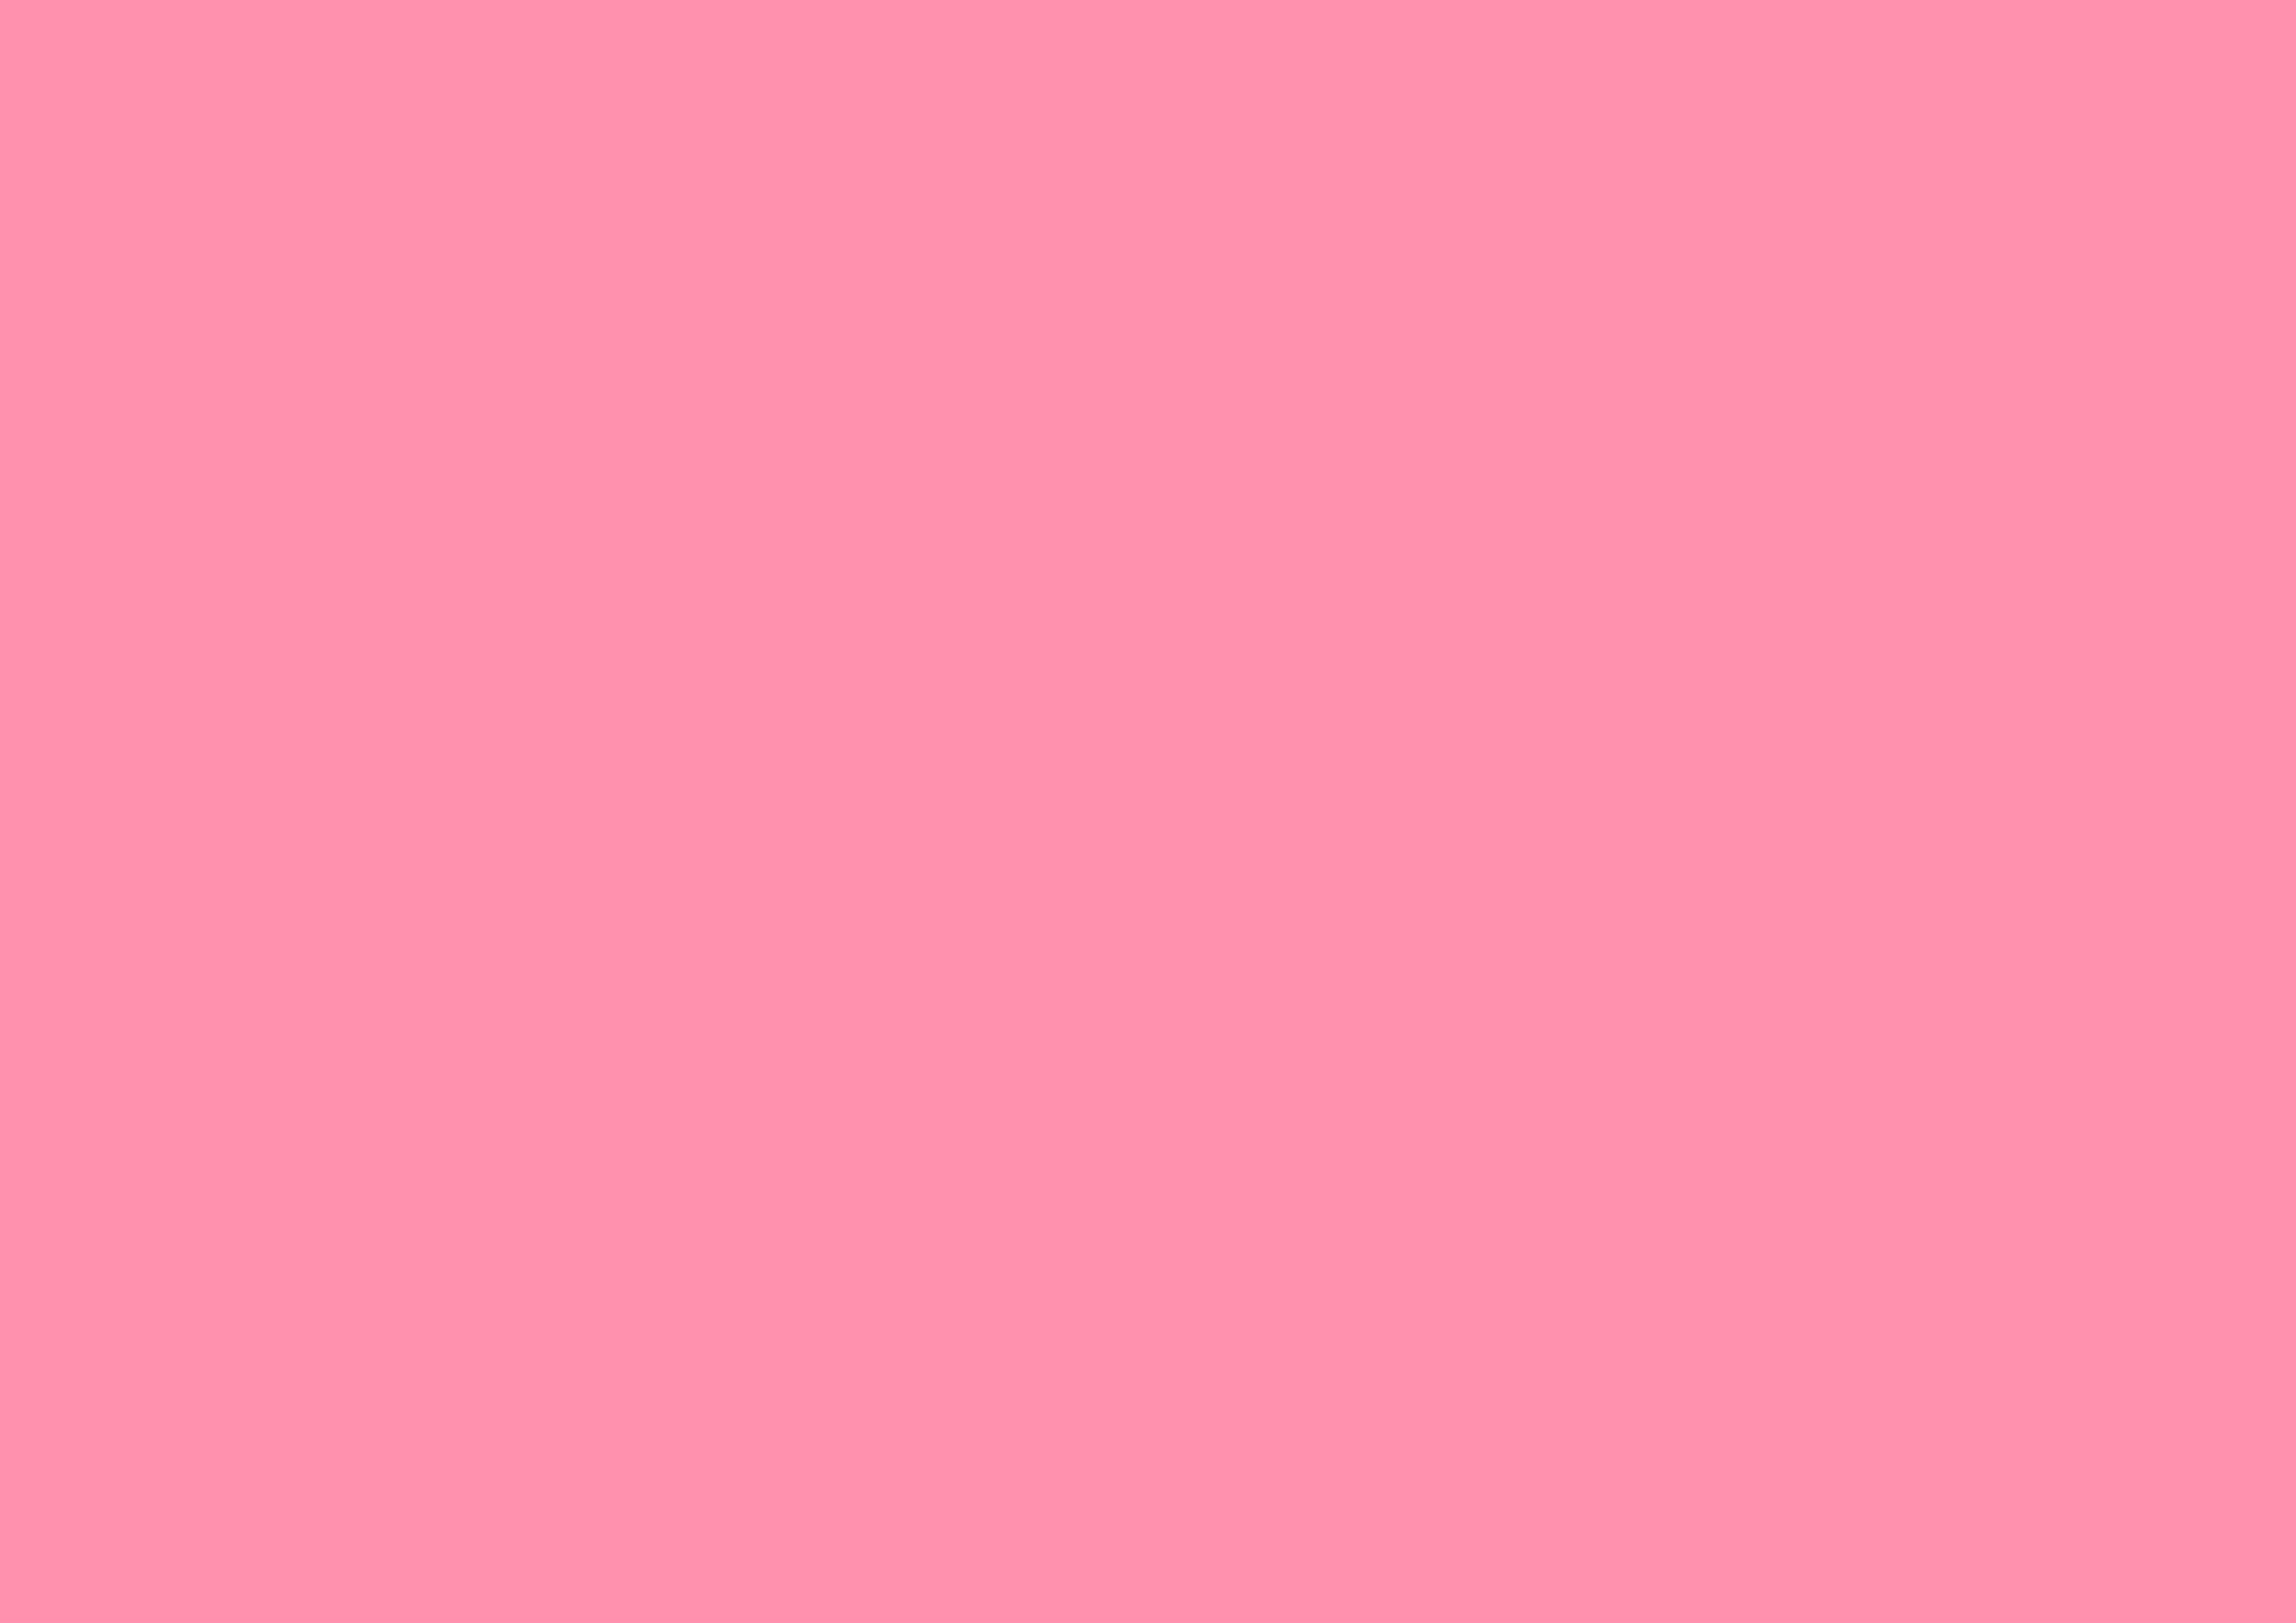 3508x2480 Schauss Pink Solid Color Background